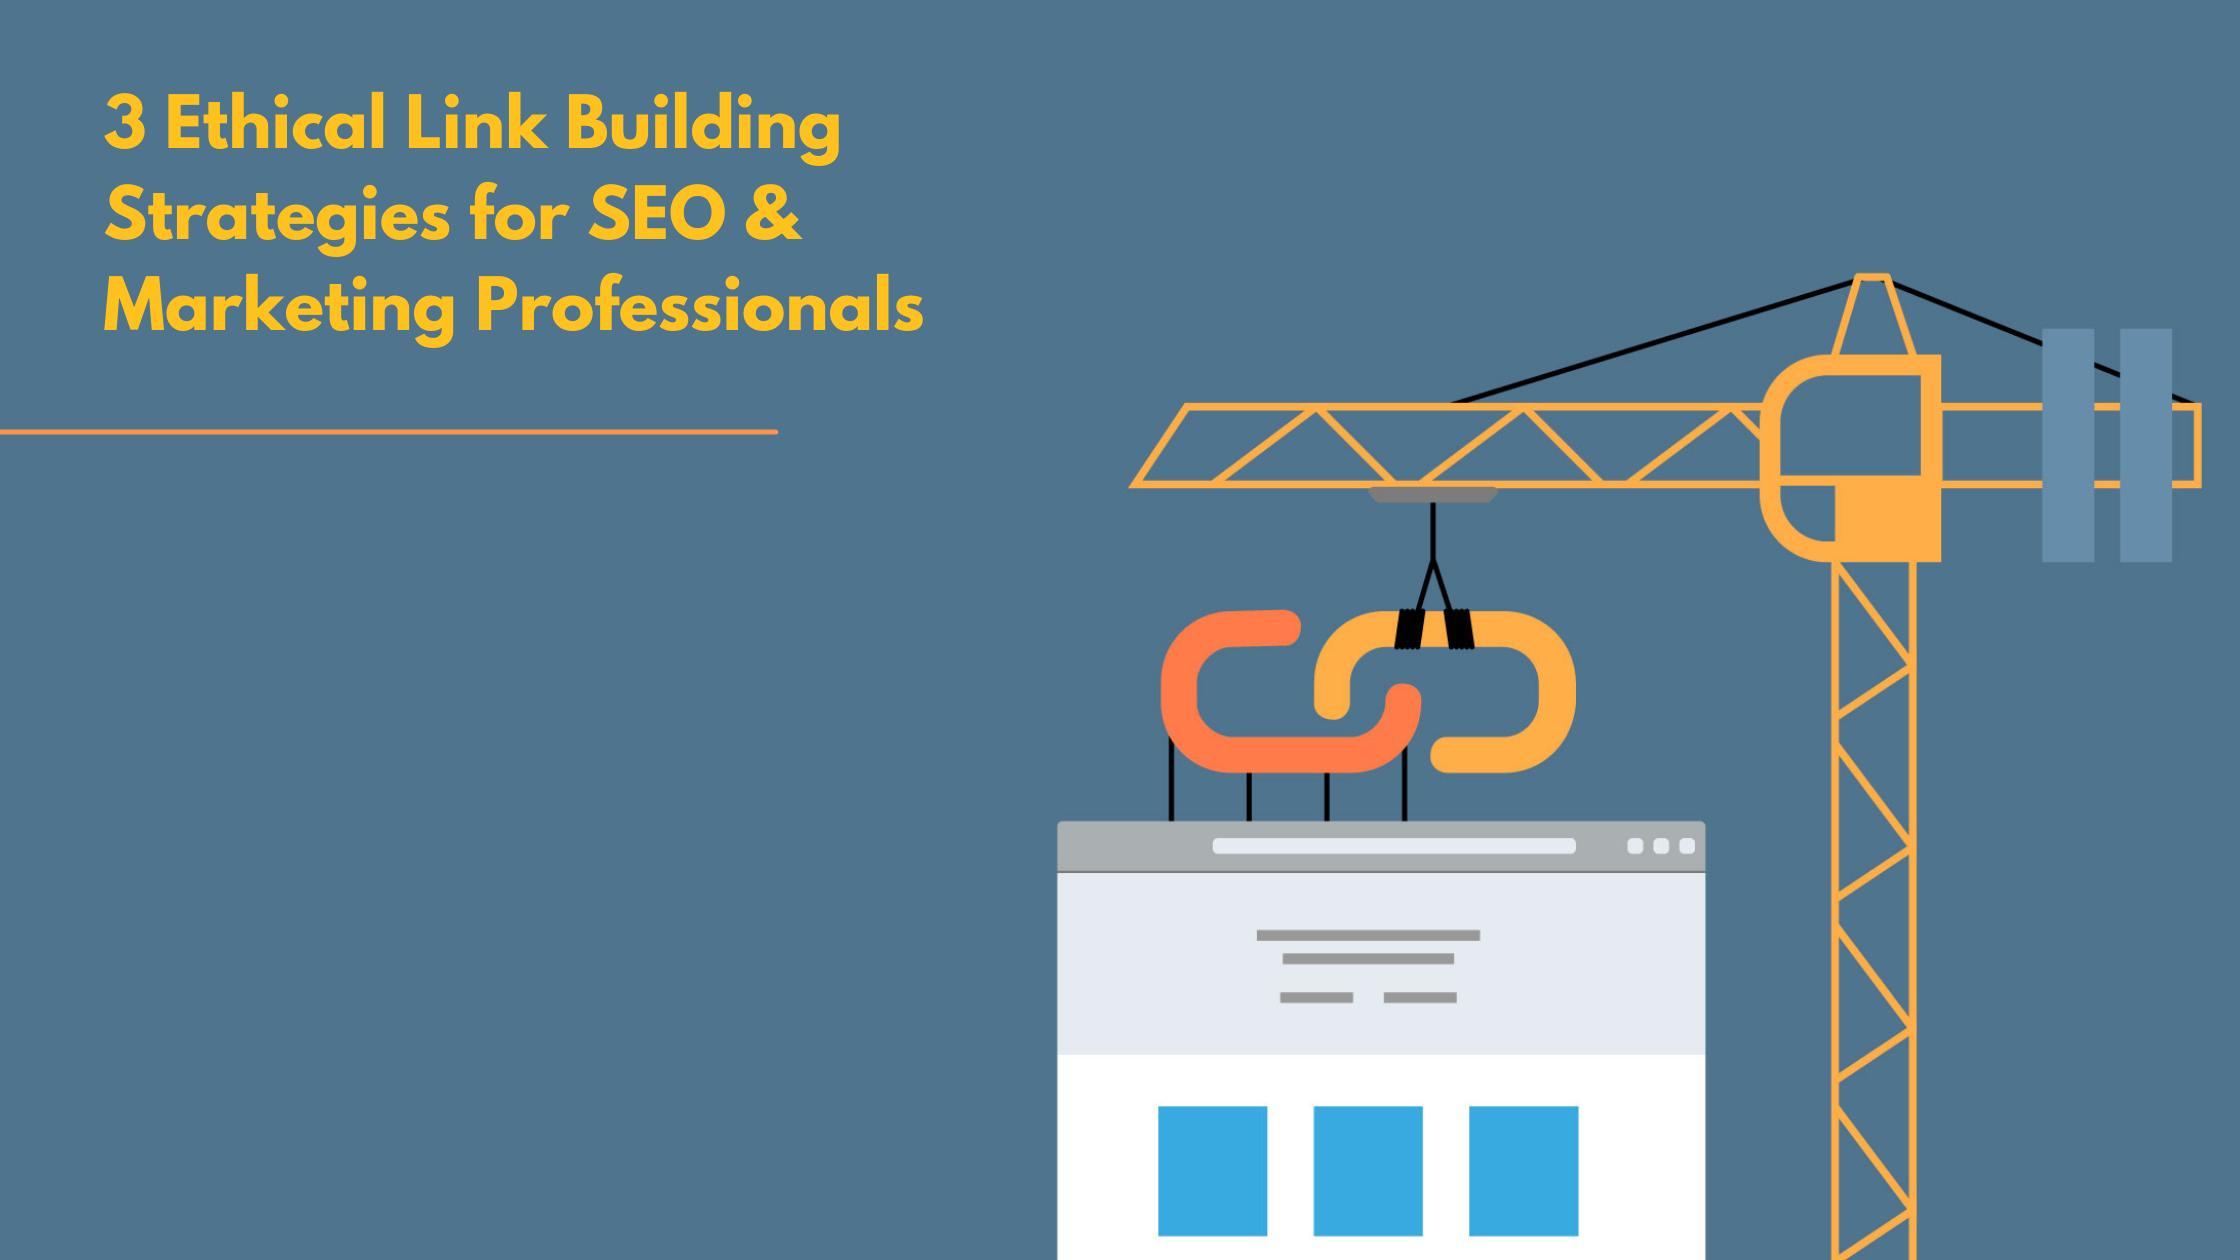 3 Ethical Link Building Strategies for SEO & Marketing Professionals